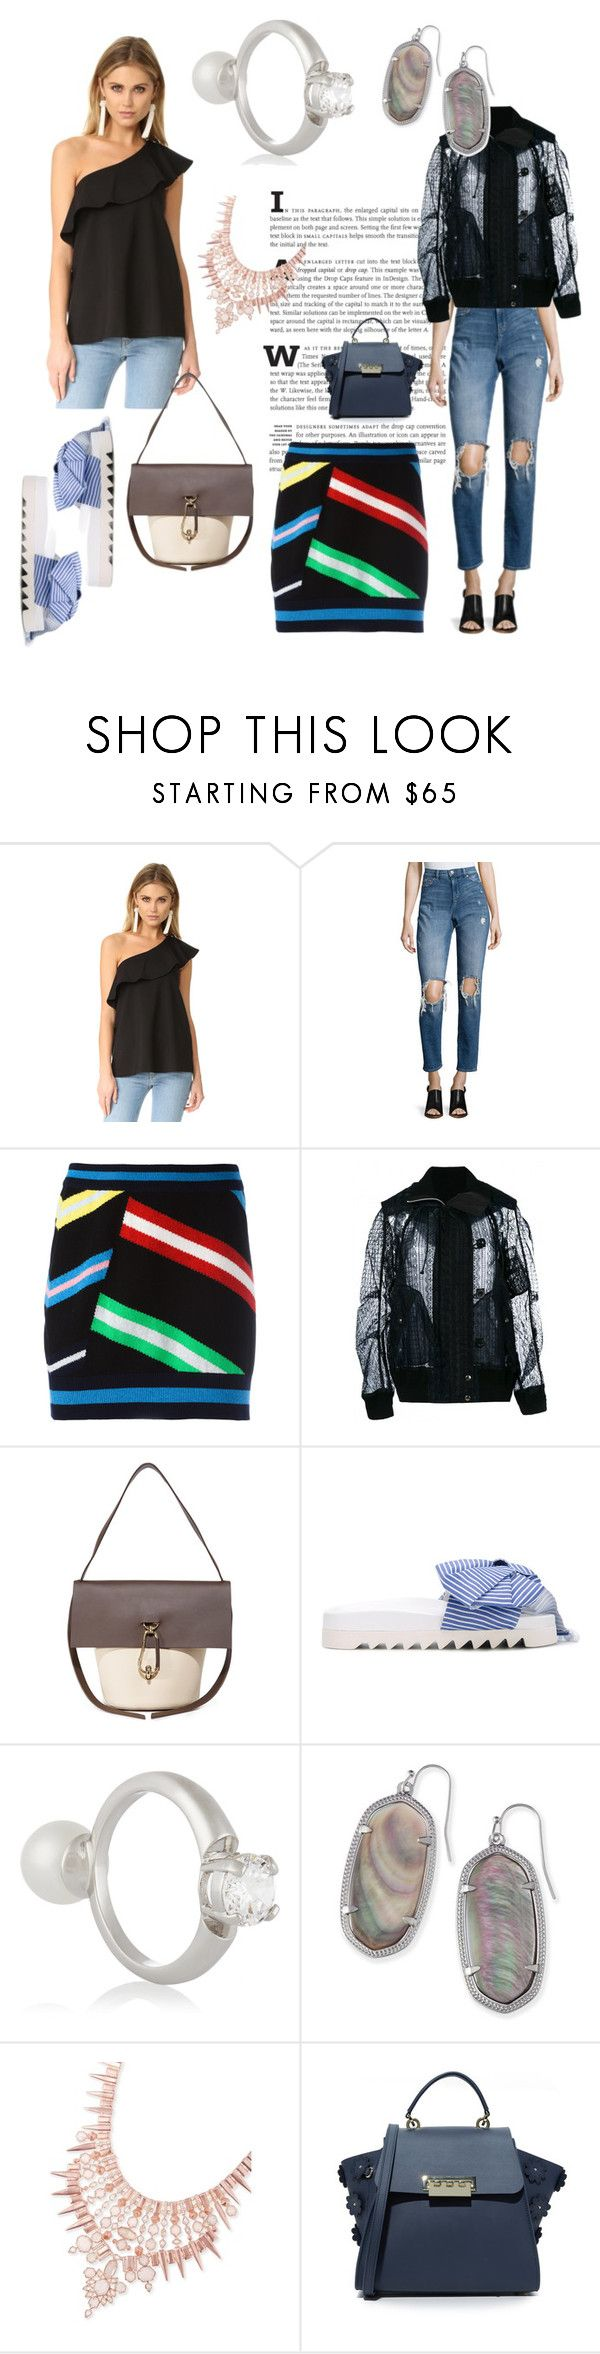 """""""your Your Style"""" by denisee-denisee ❤ liked on Polyvore featuring Susana Monaco, Cheap Monday, Barrie, Sacai, ZAC Zac Posen, Joshua's, Maison Margiela and Kendra Scott"""